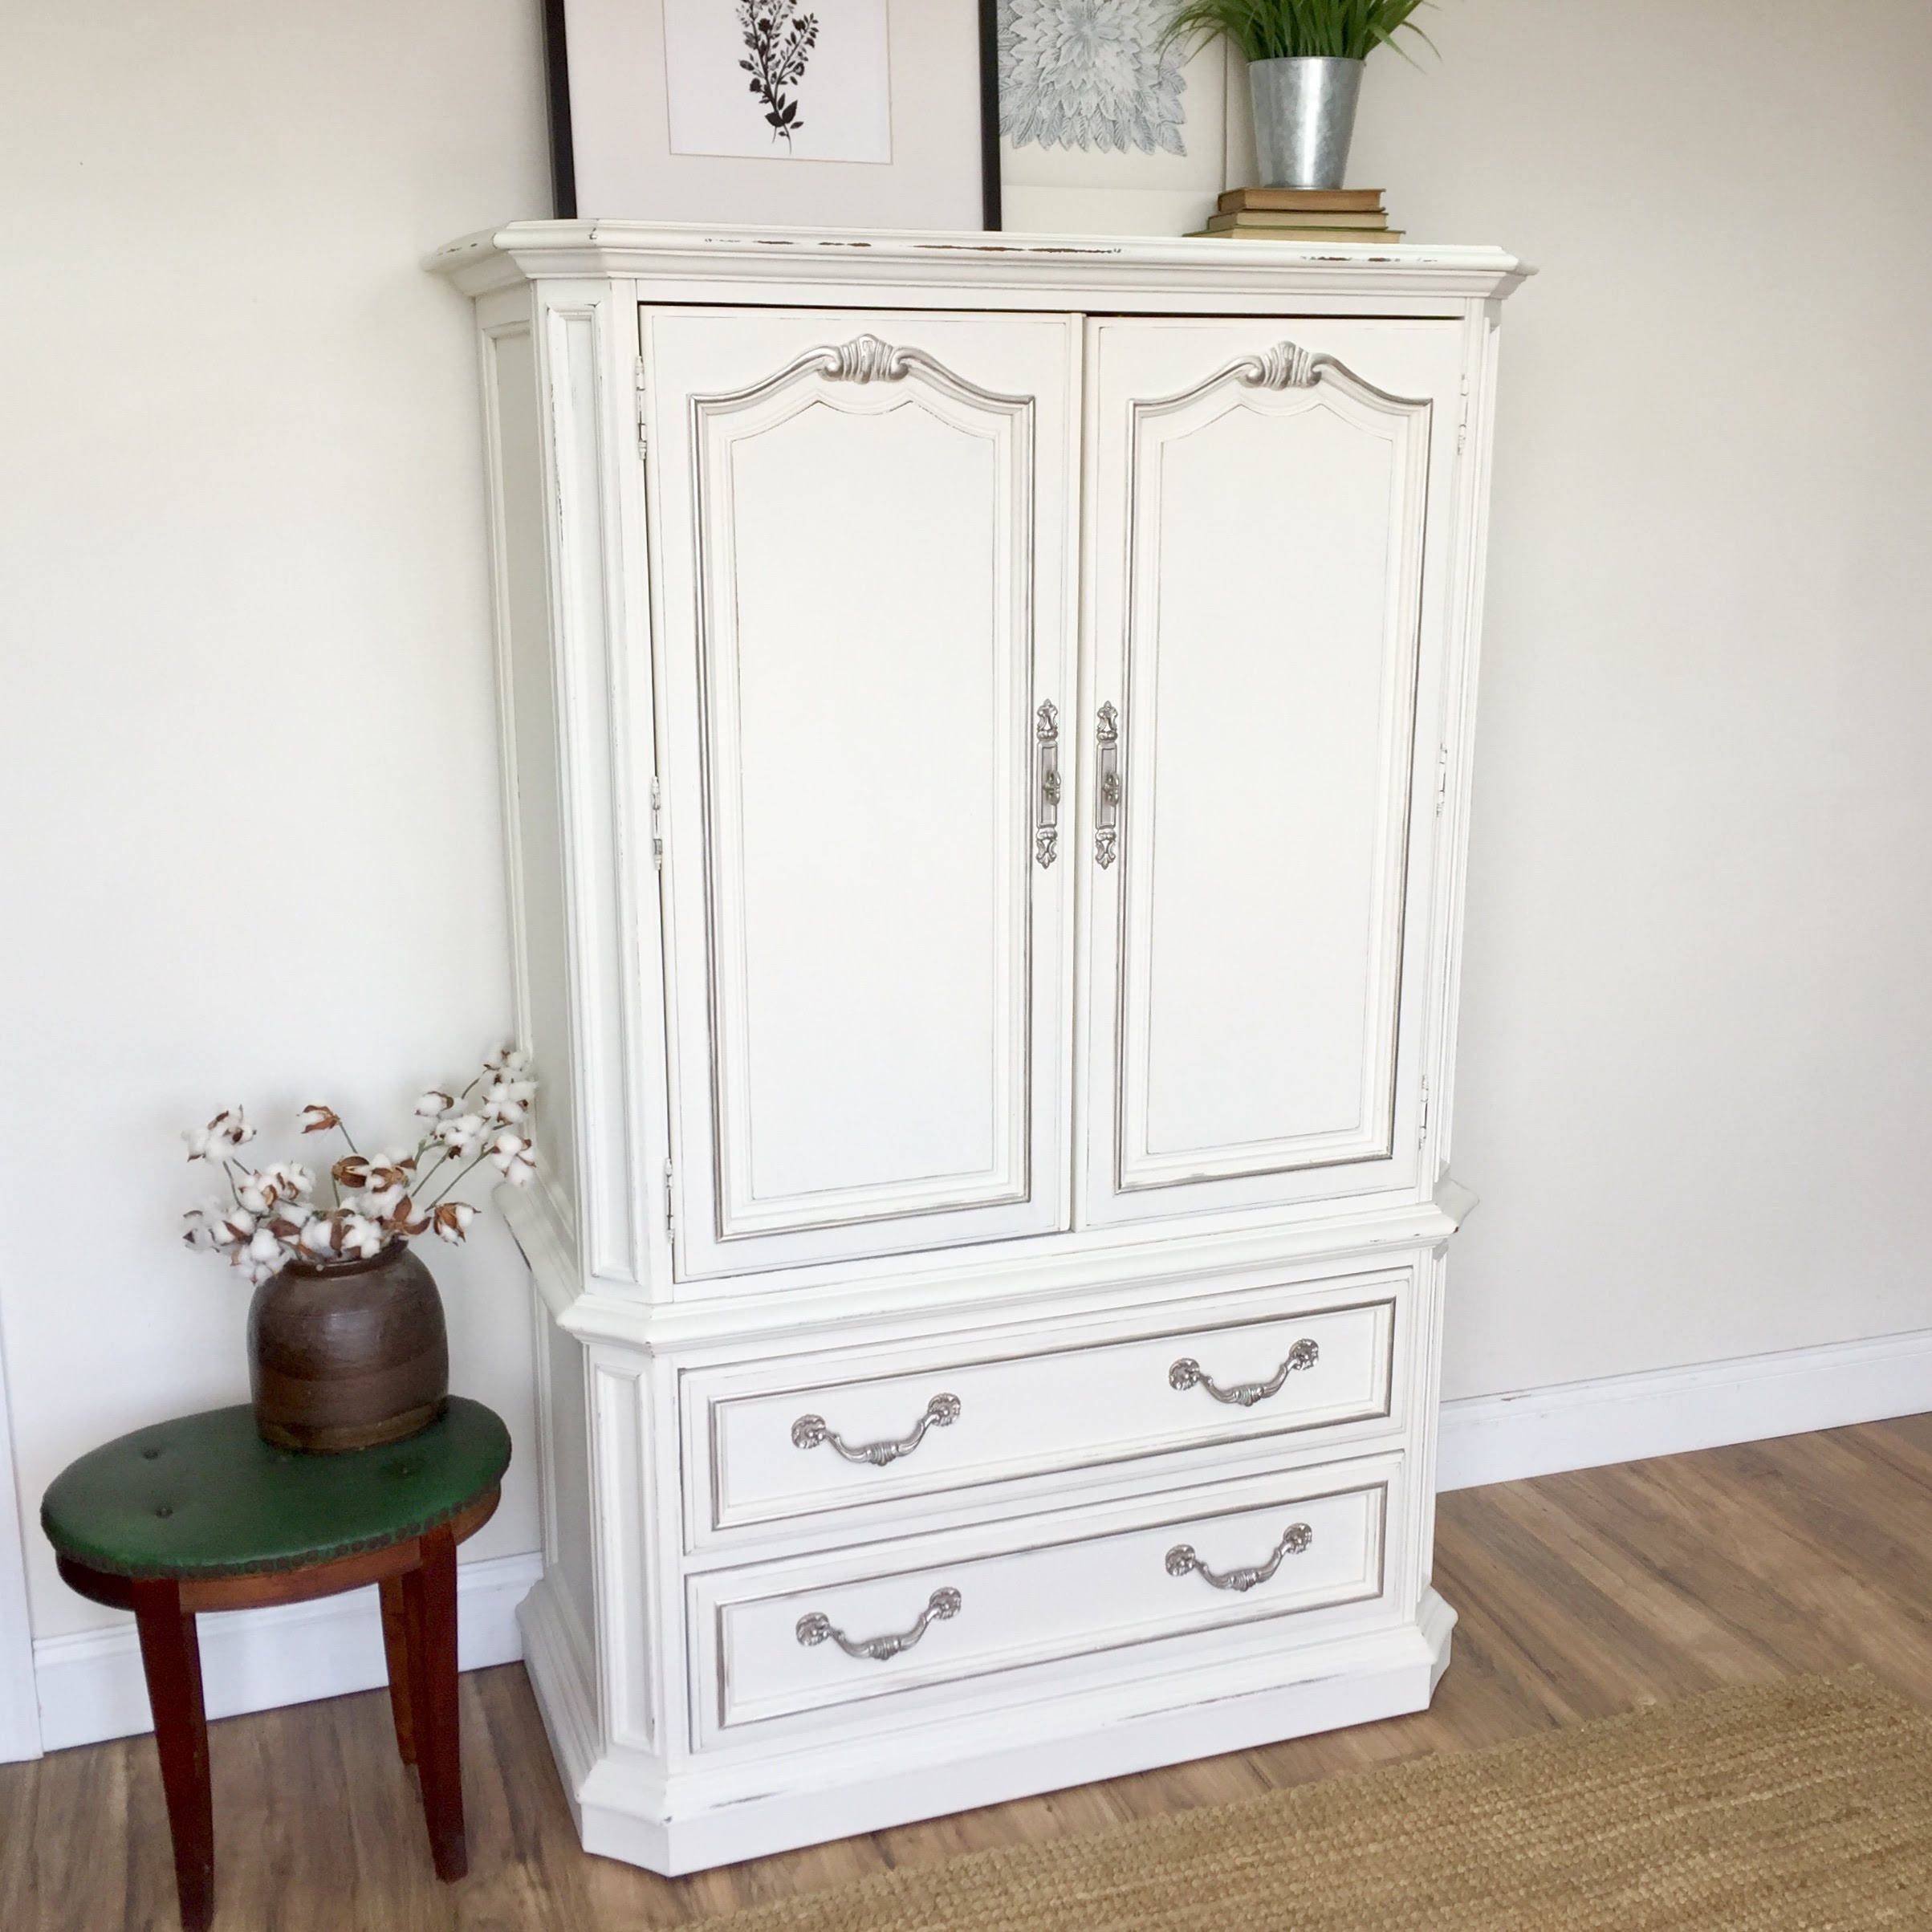 But Armoir White Armoire Shabby Chic Furniture Sold By Vintage Hip Decor